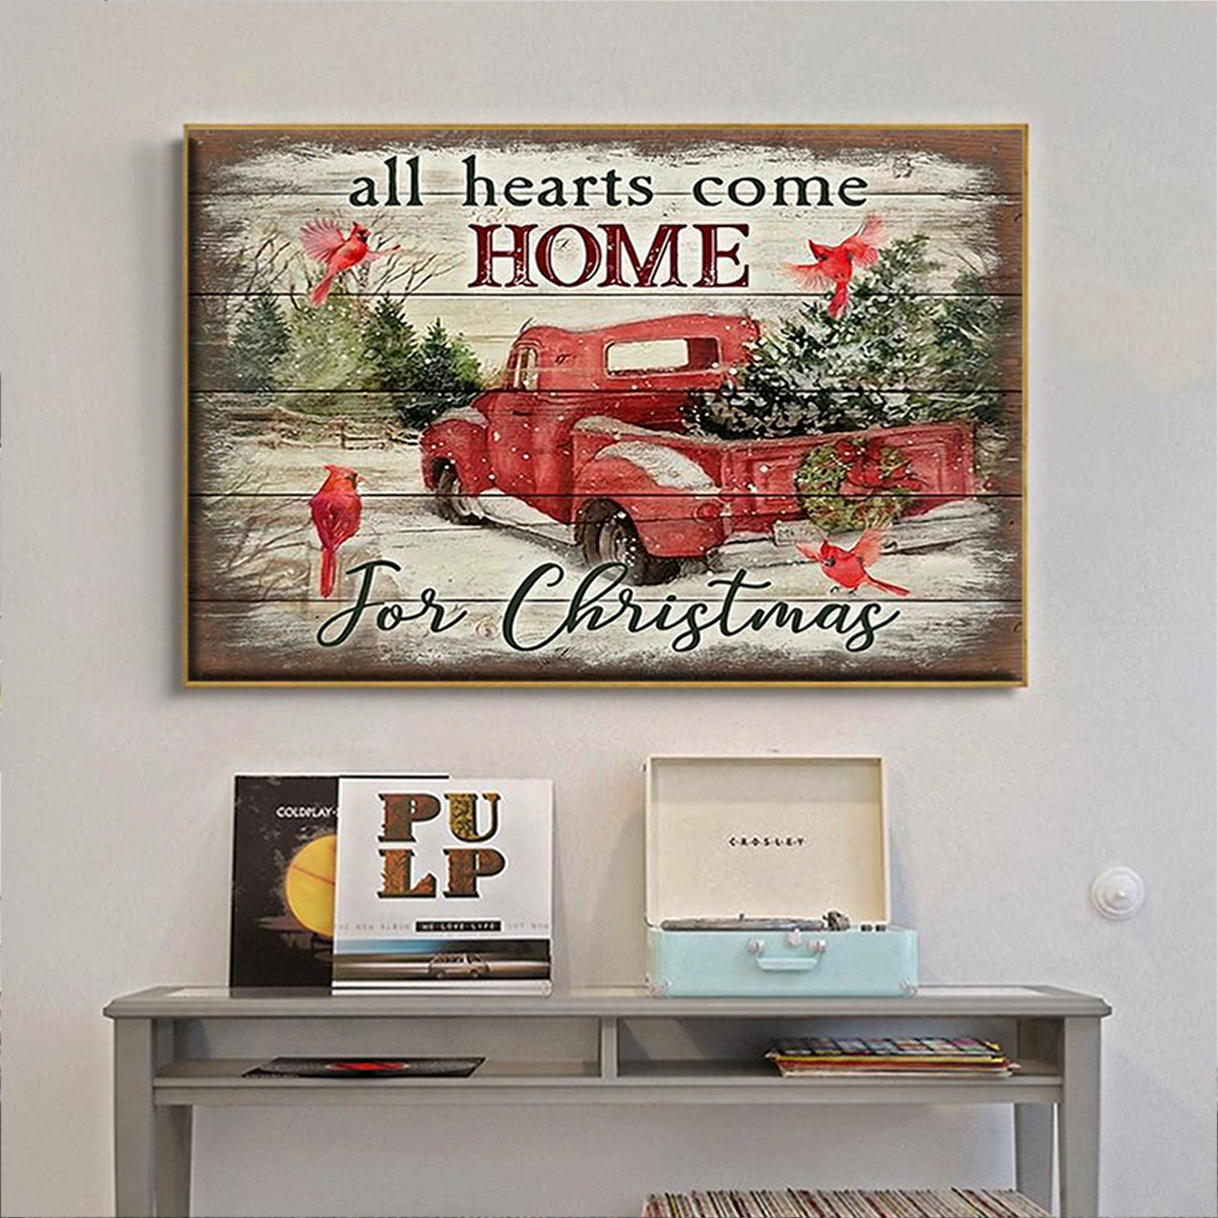 All hearts come home for christmas canvas prints small